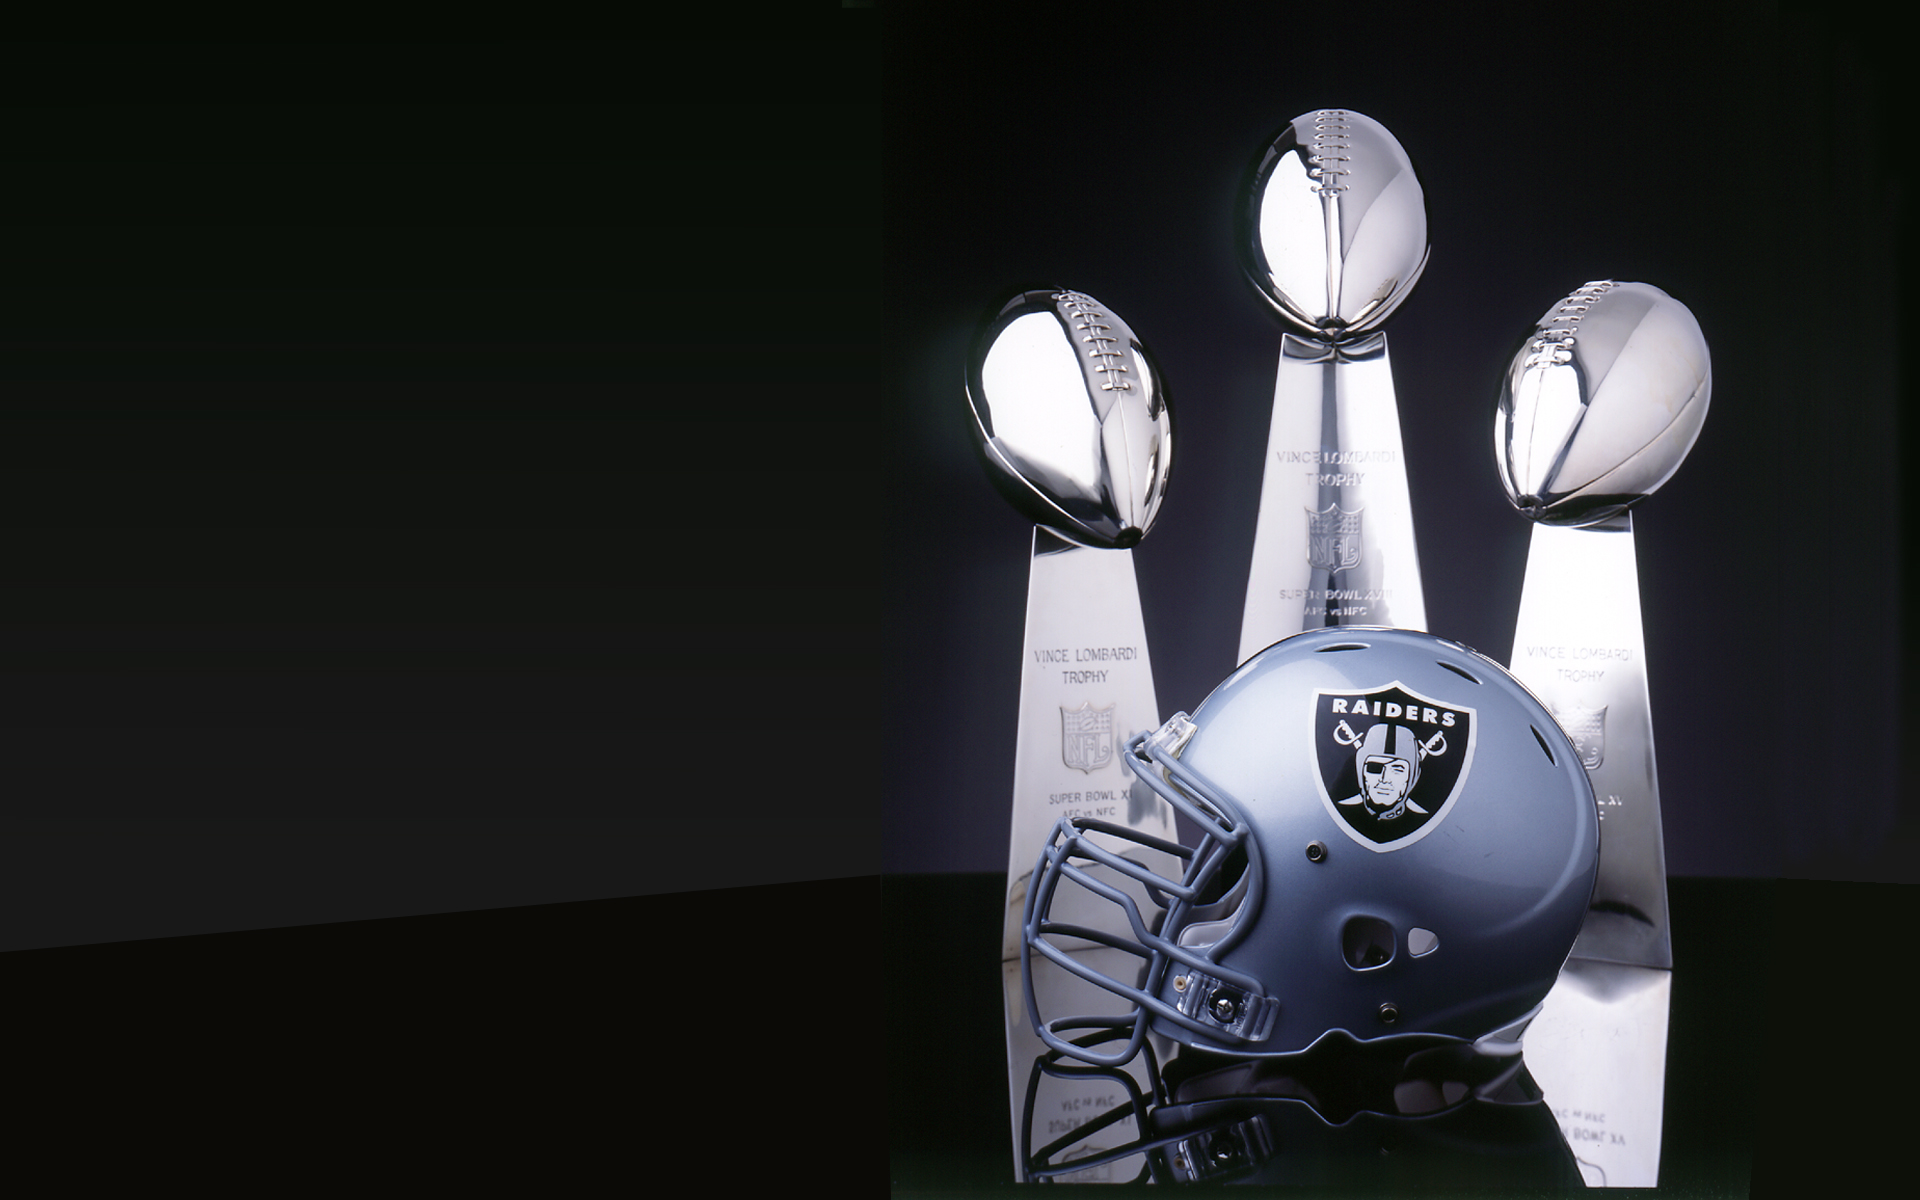 Oakland Raiders Wallpapers 1920x1200